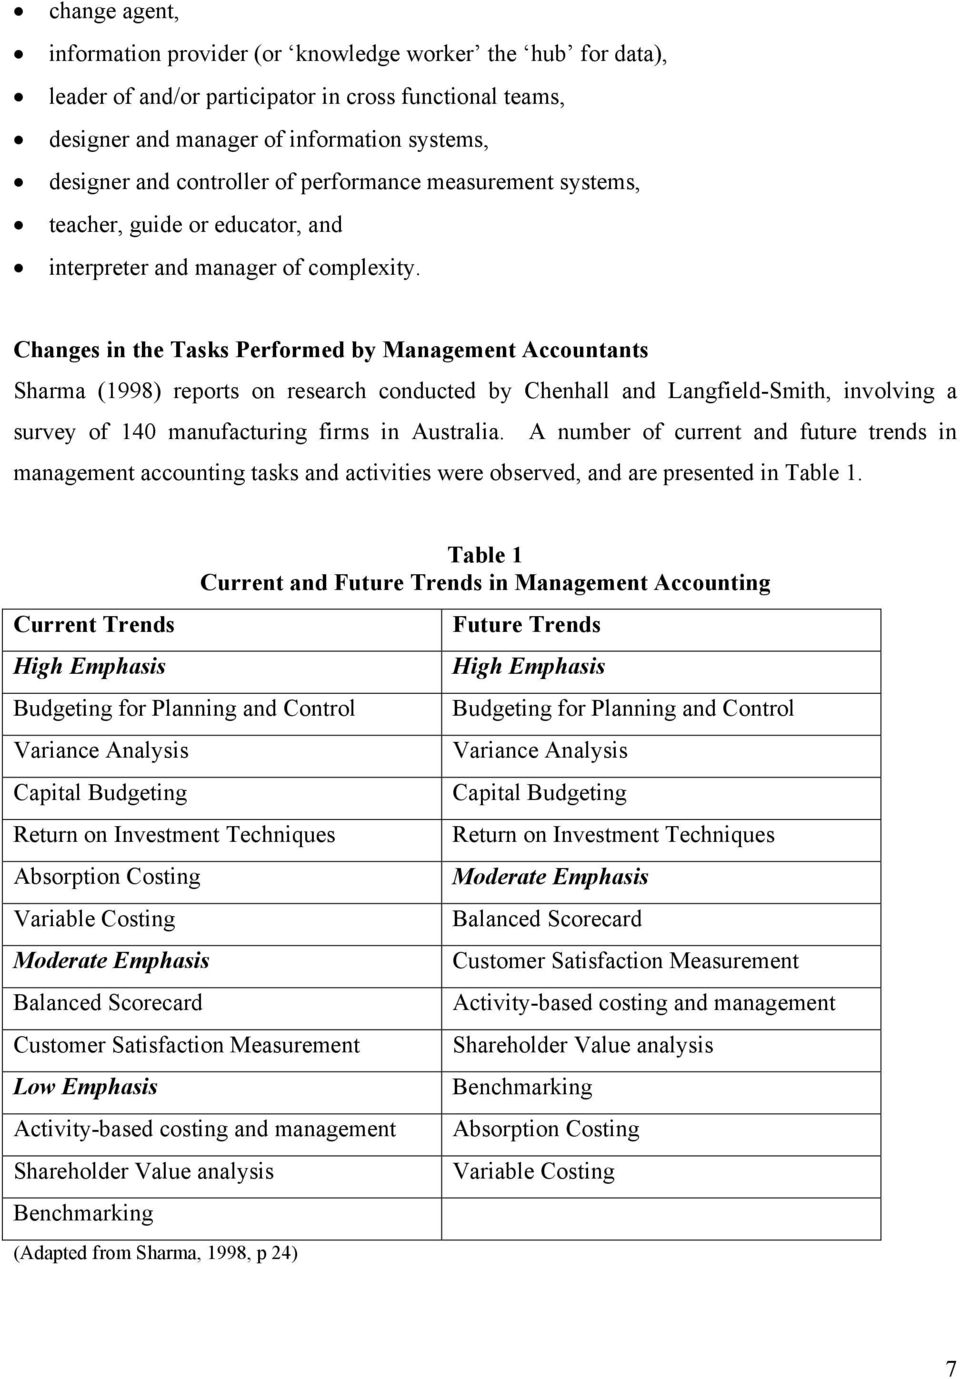 Changes in the Tasks Performed by Management Accountants Sharma (1998) reports on research conducted by Chenhall and Langfield-Smith, involving a survey of 140 manufacturing firms in Australia.